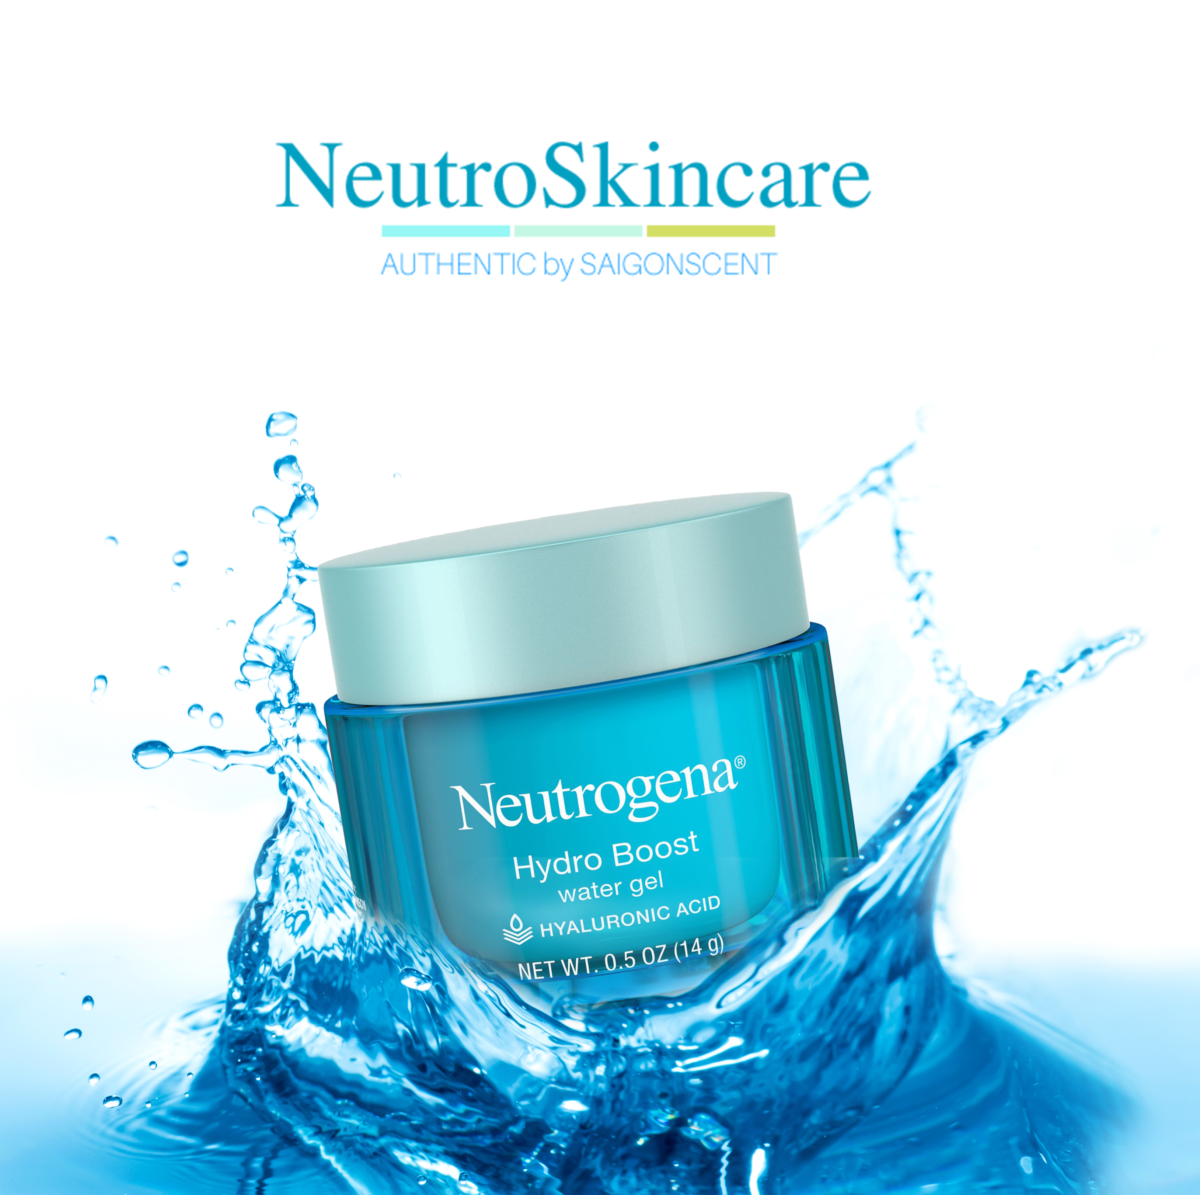 Neutrogena Hydro Boost Water Gel trial size